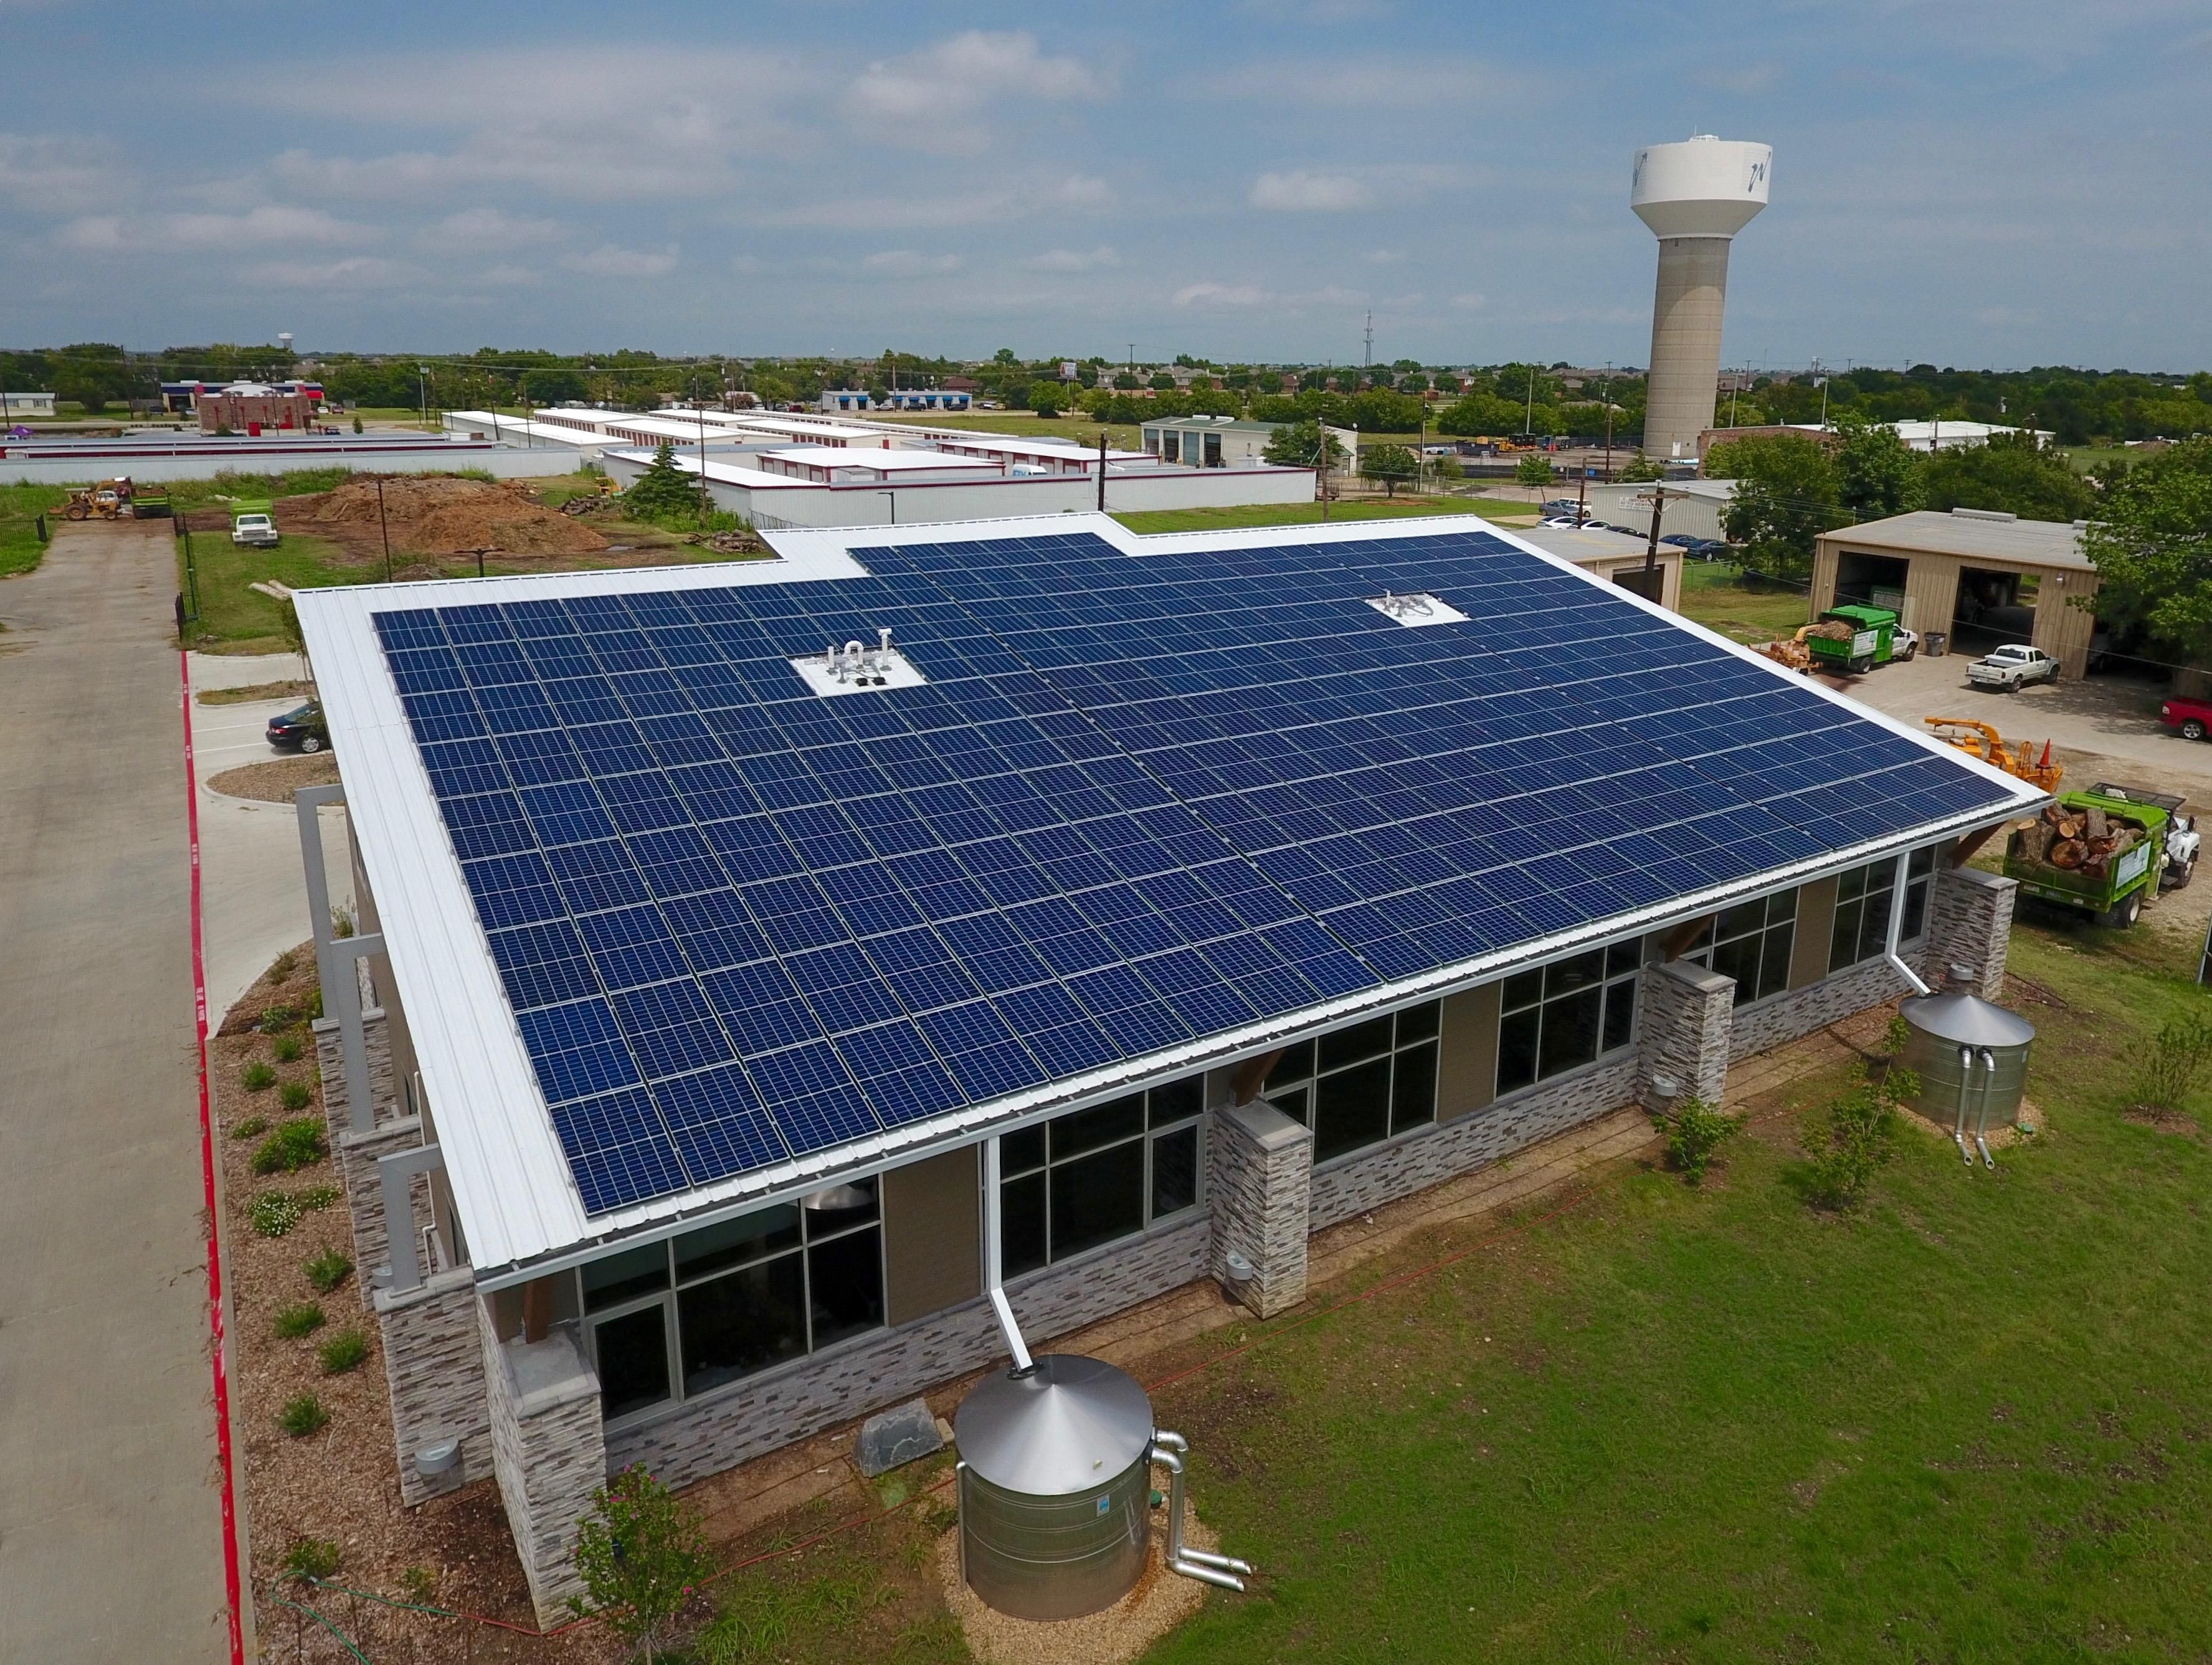 Arborilogical Services Of Wylie Texas Has Been Caring For People Trees And Our Environment In The Dfw Area For More T Solar Solar Solutions Roof Solar Panel